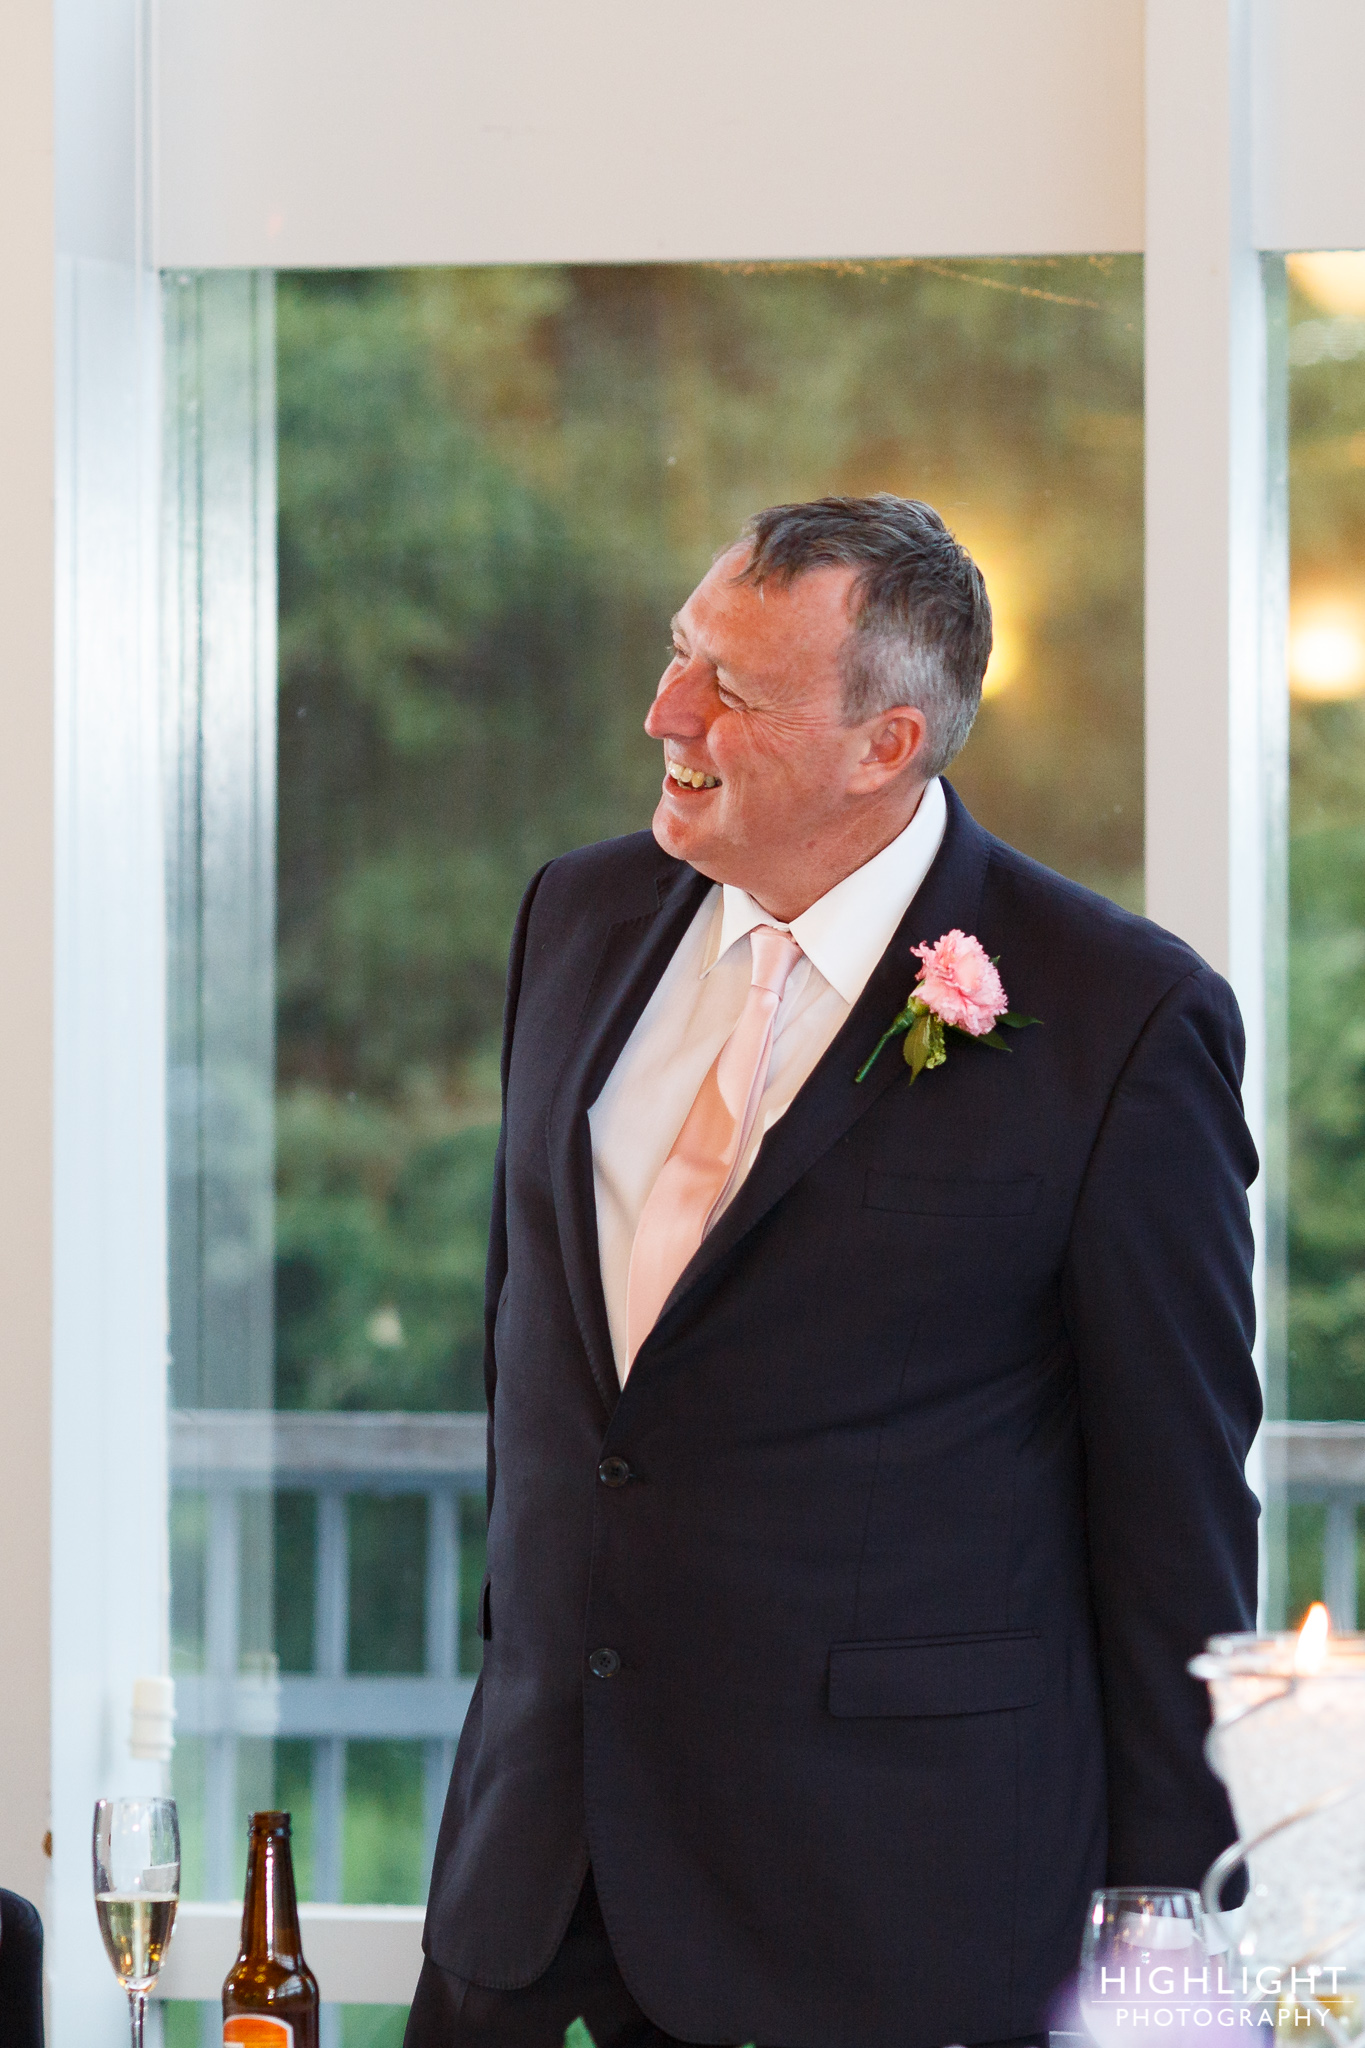 highlight_wedding_photography_palmerston_north_manawatu_chalet_wedding-103.jpg